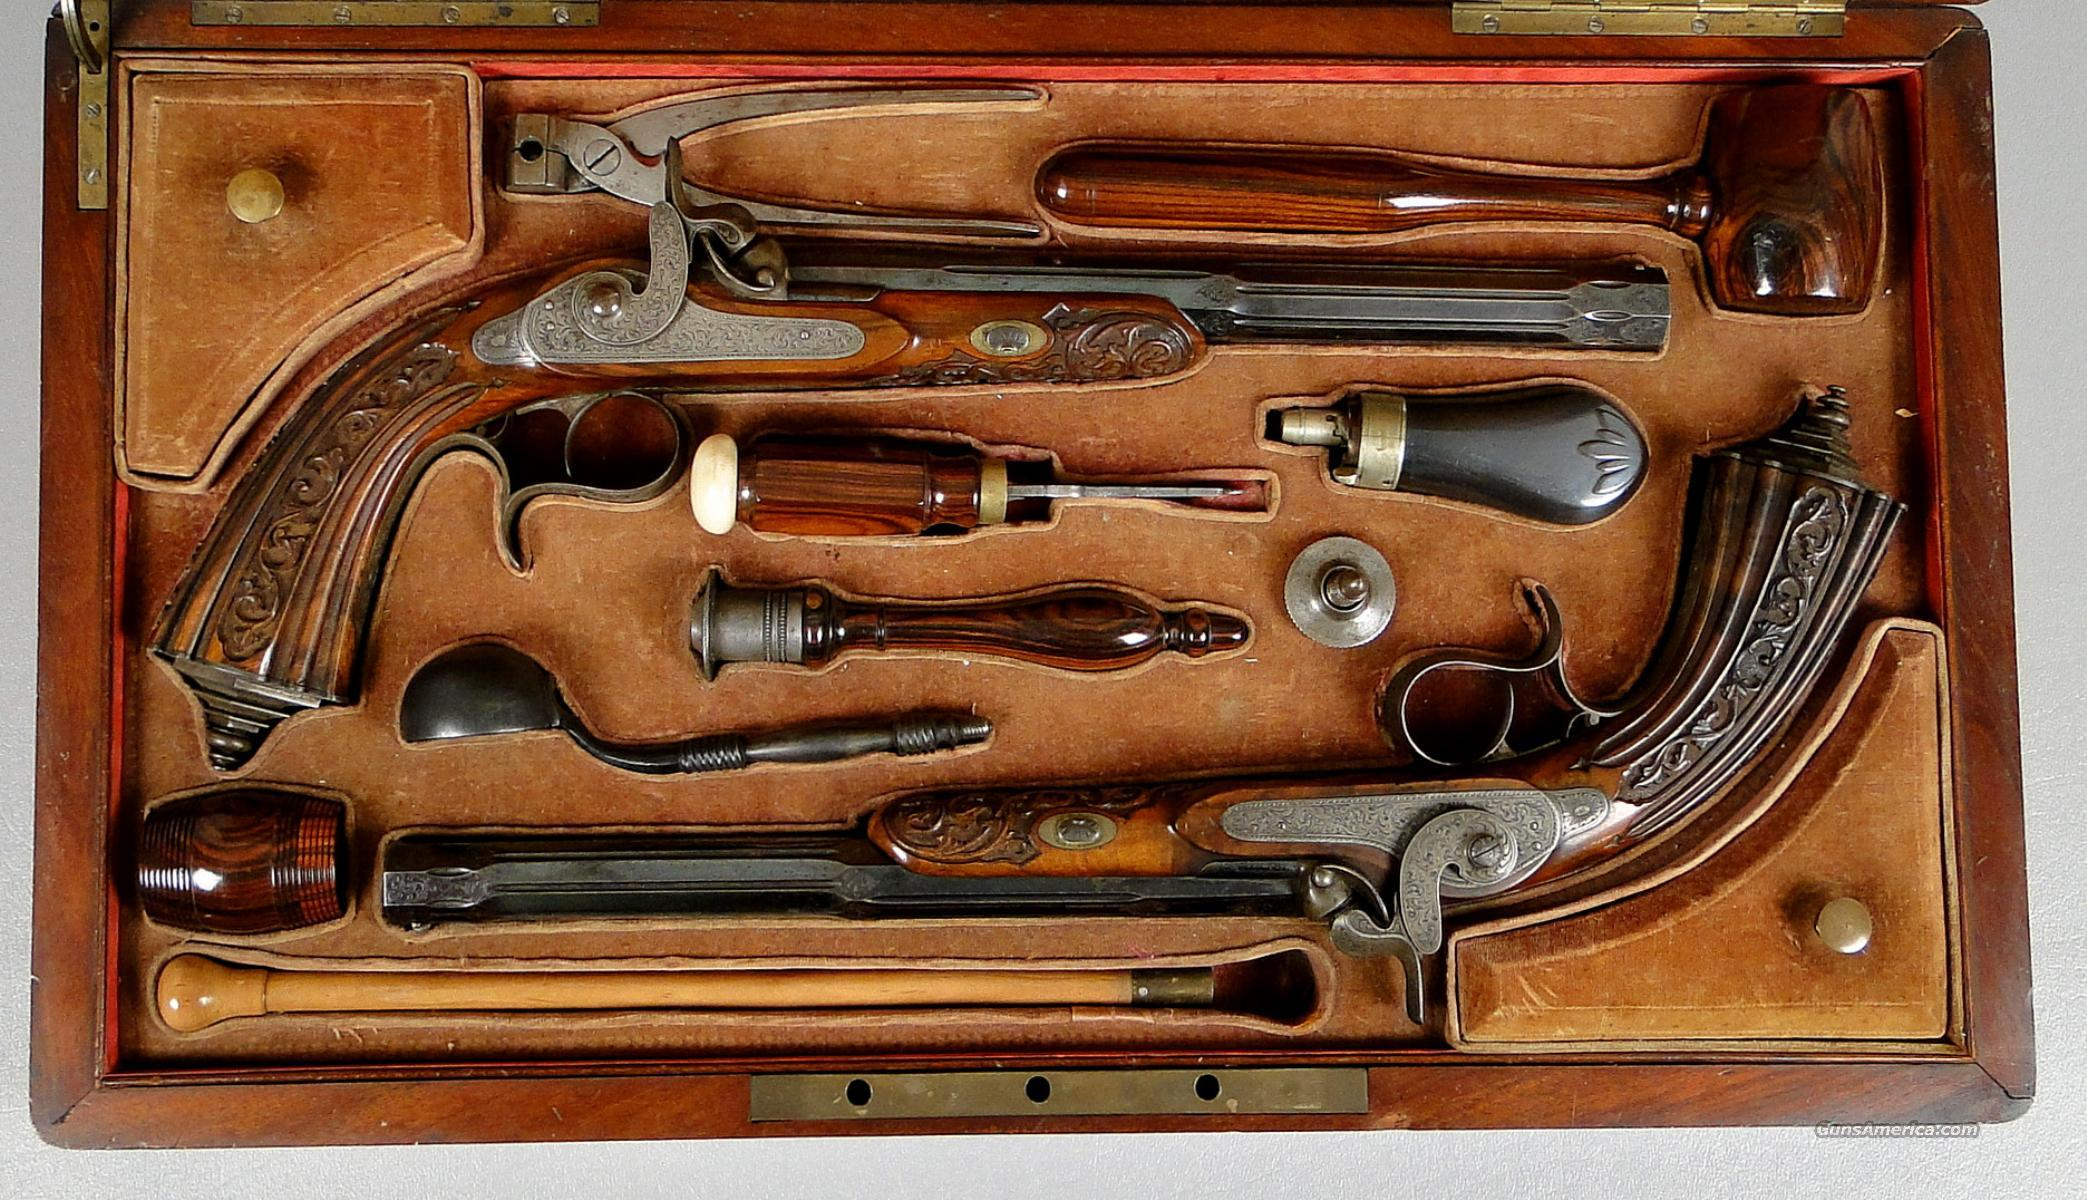 Antique Cased Set of L. Ghaye Belgian - French Percussion Dueling Pistols   Guns > Pistols > Muzzleloading Pre-1899 Pistols (perc)